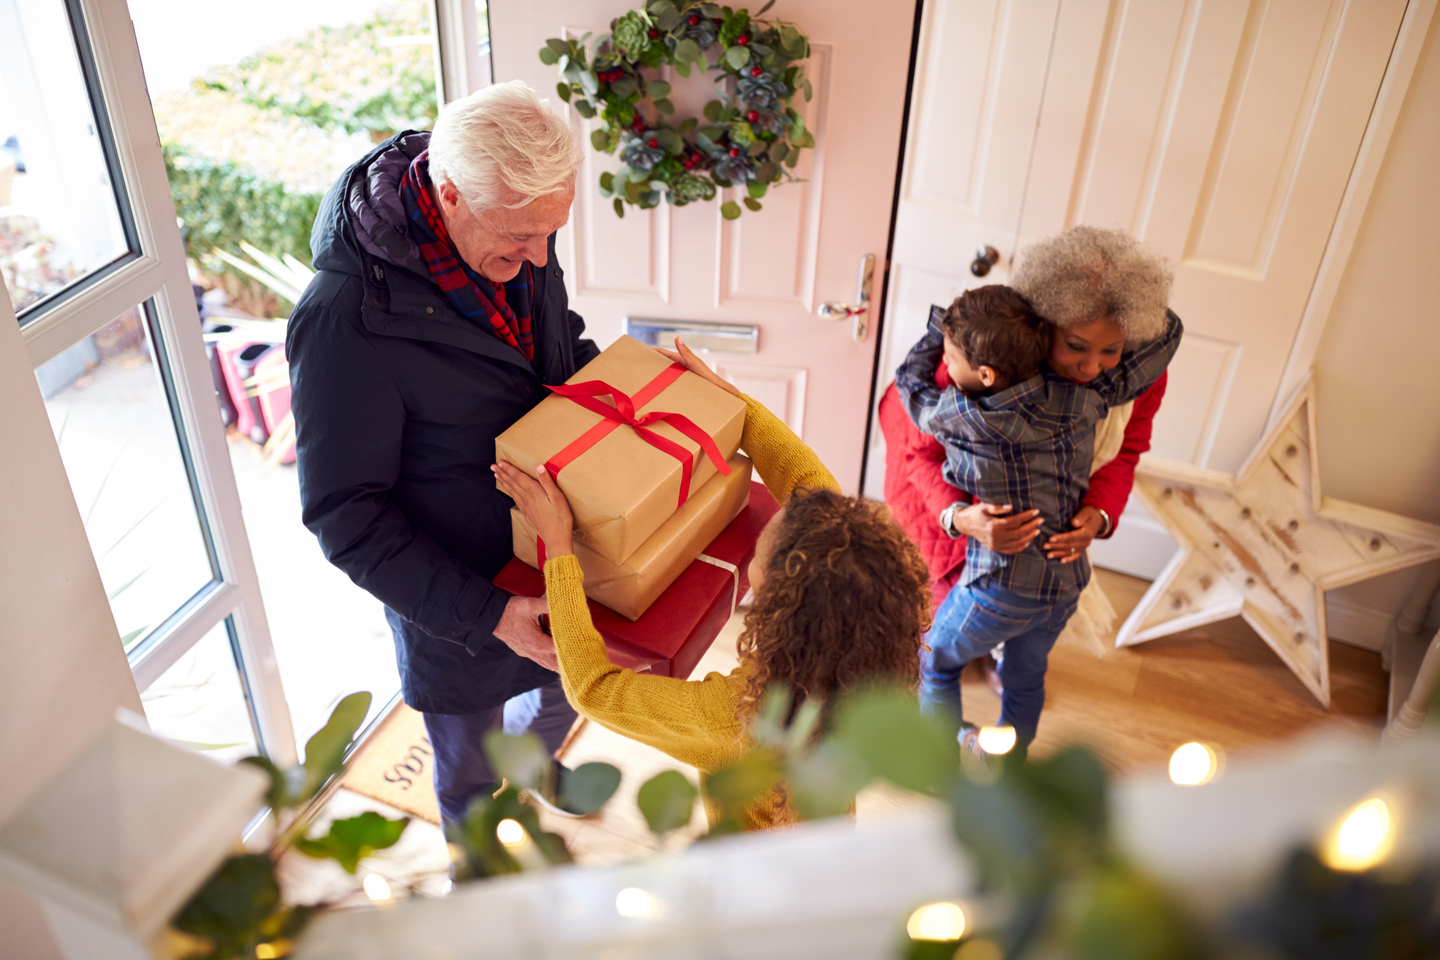 http://Driving%20Home%20For%20Christmas%20Car%20Packing%20Tips%20Shutterstock%201525248767